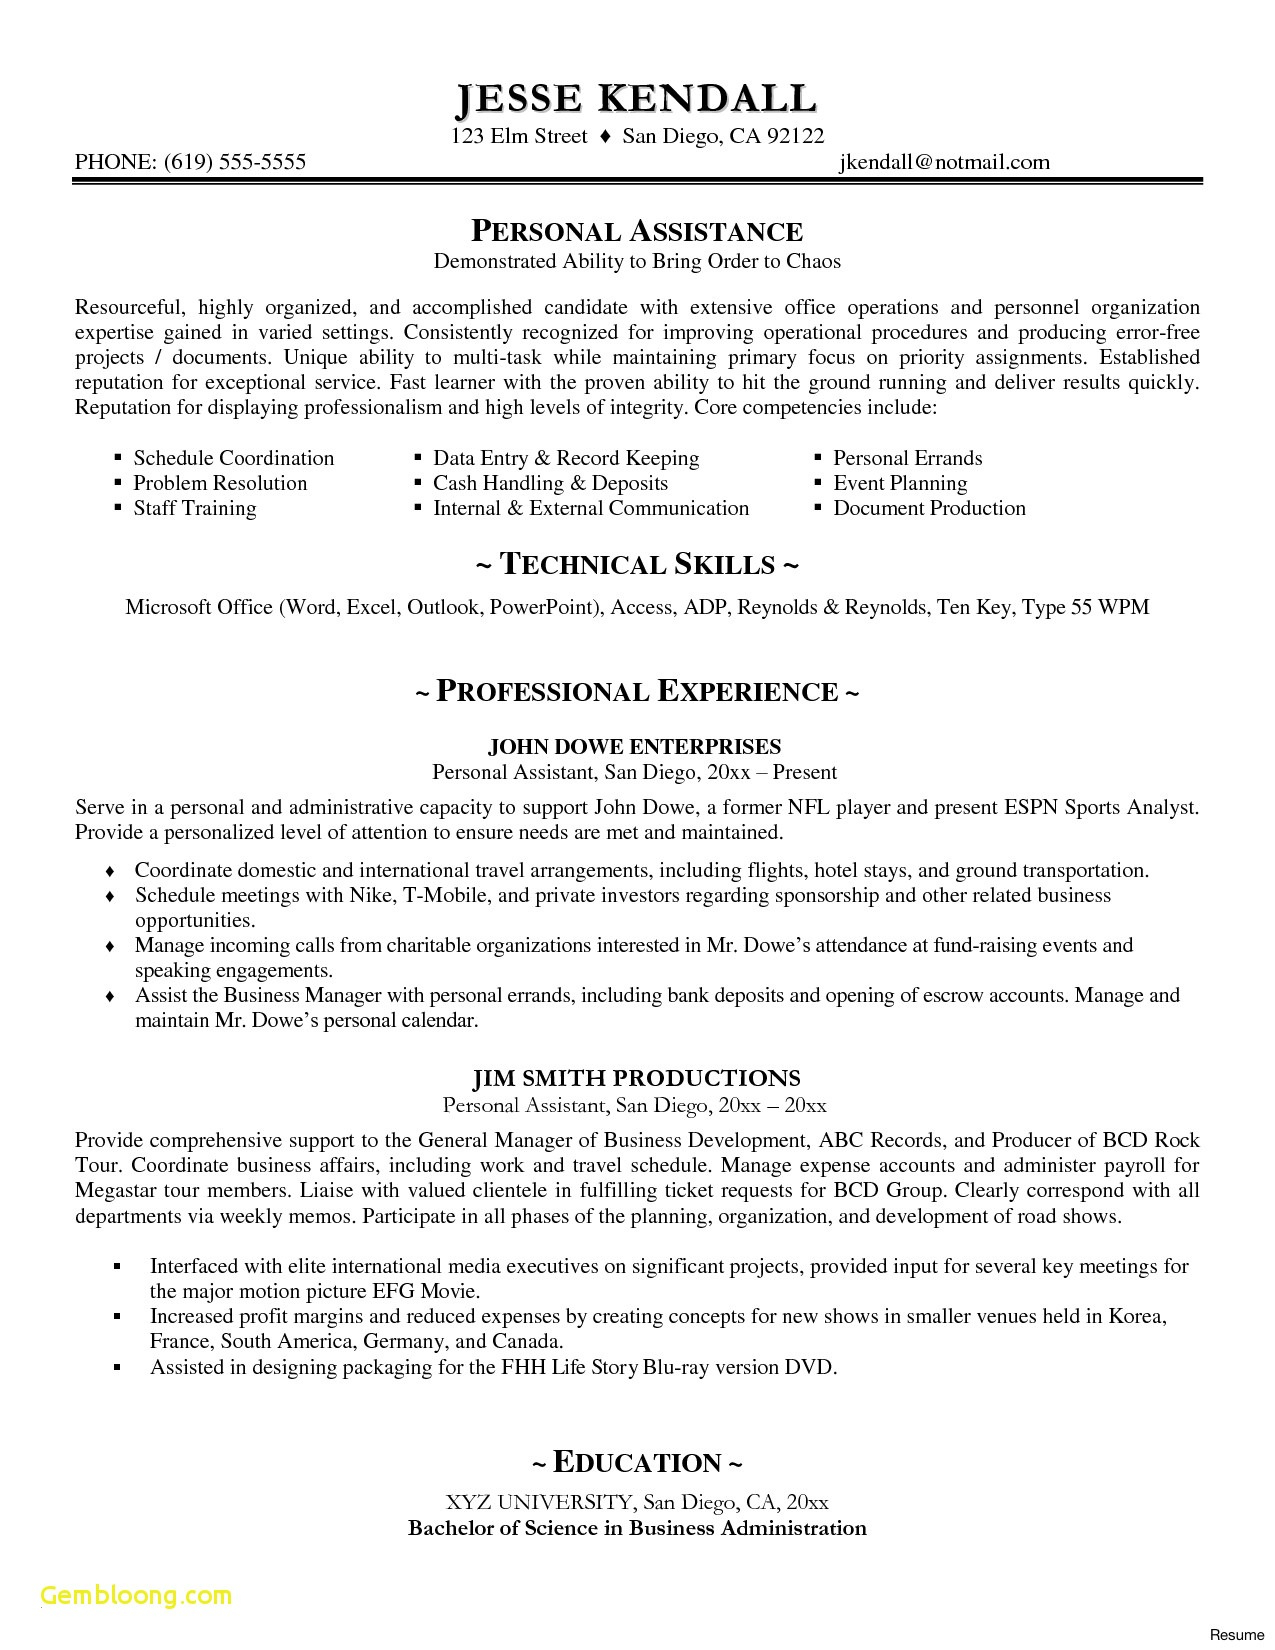 Internal Resume Sample - Personal assistant Resume Sample New Resume Samples Doc New